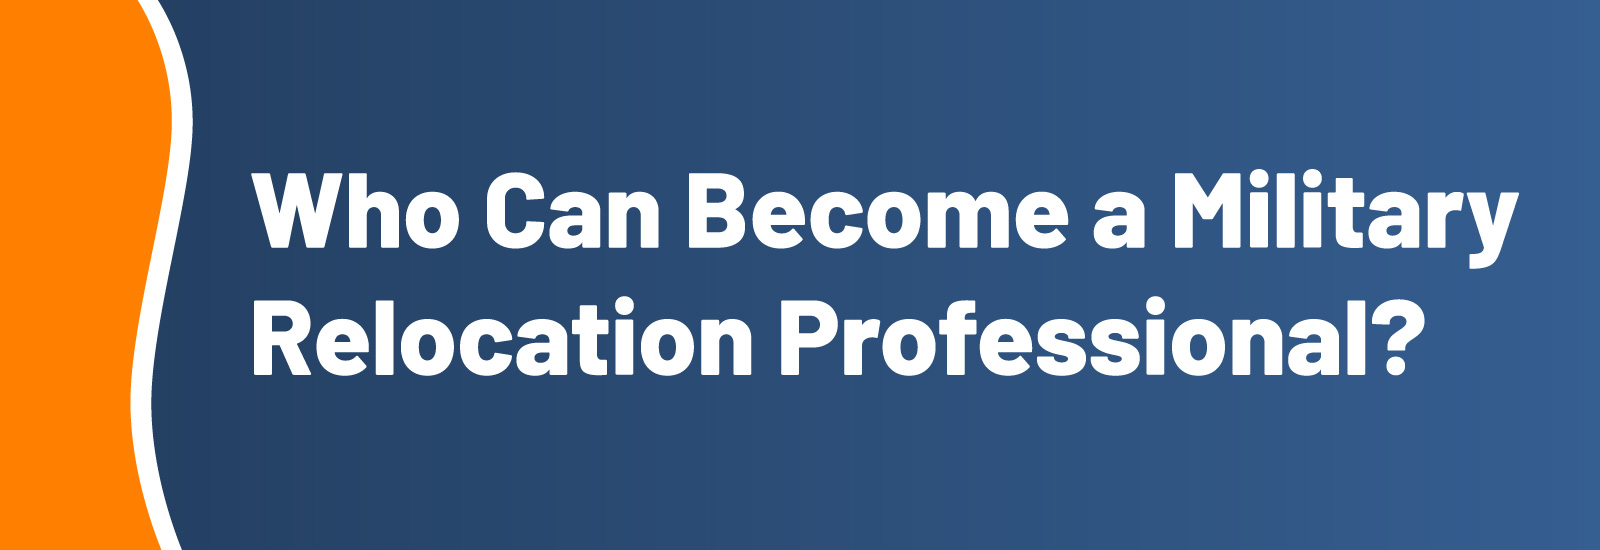 Who Can Become a Military Relocation Professional?